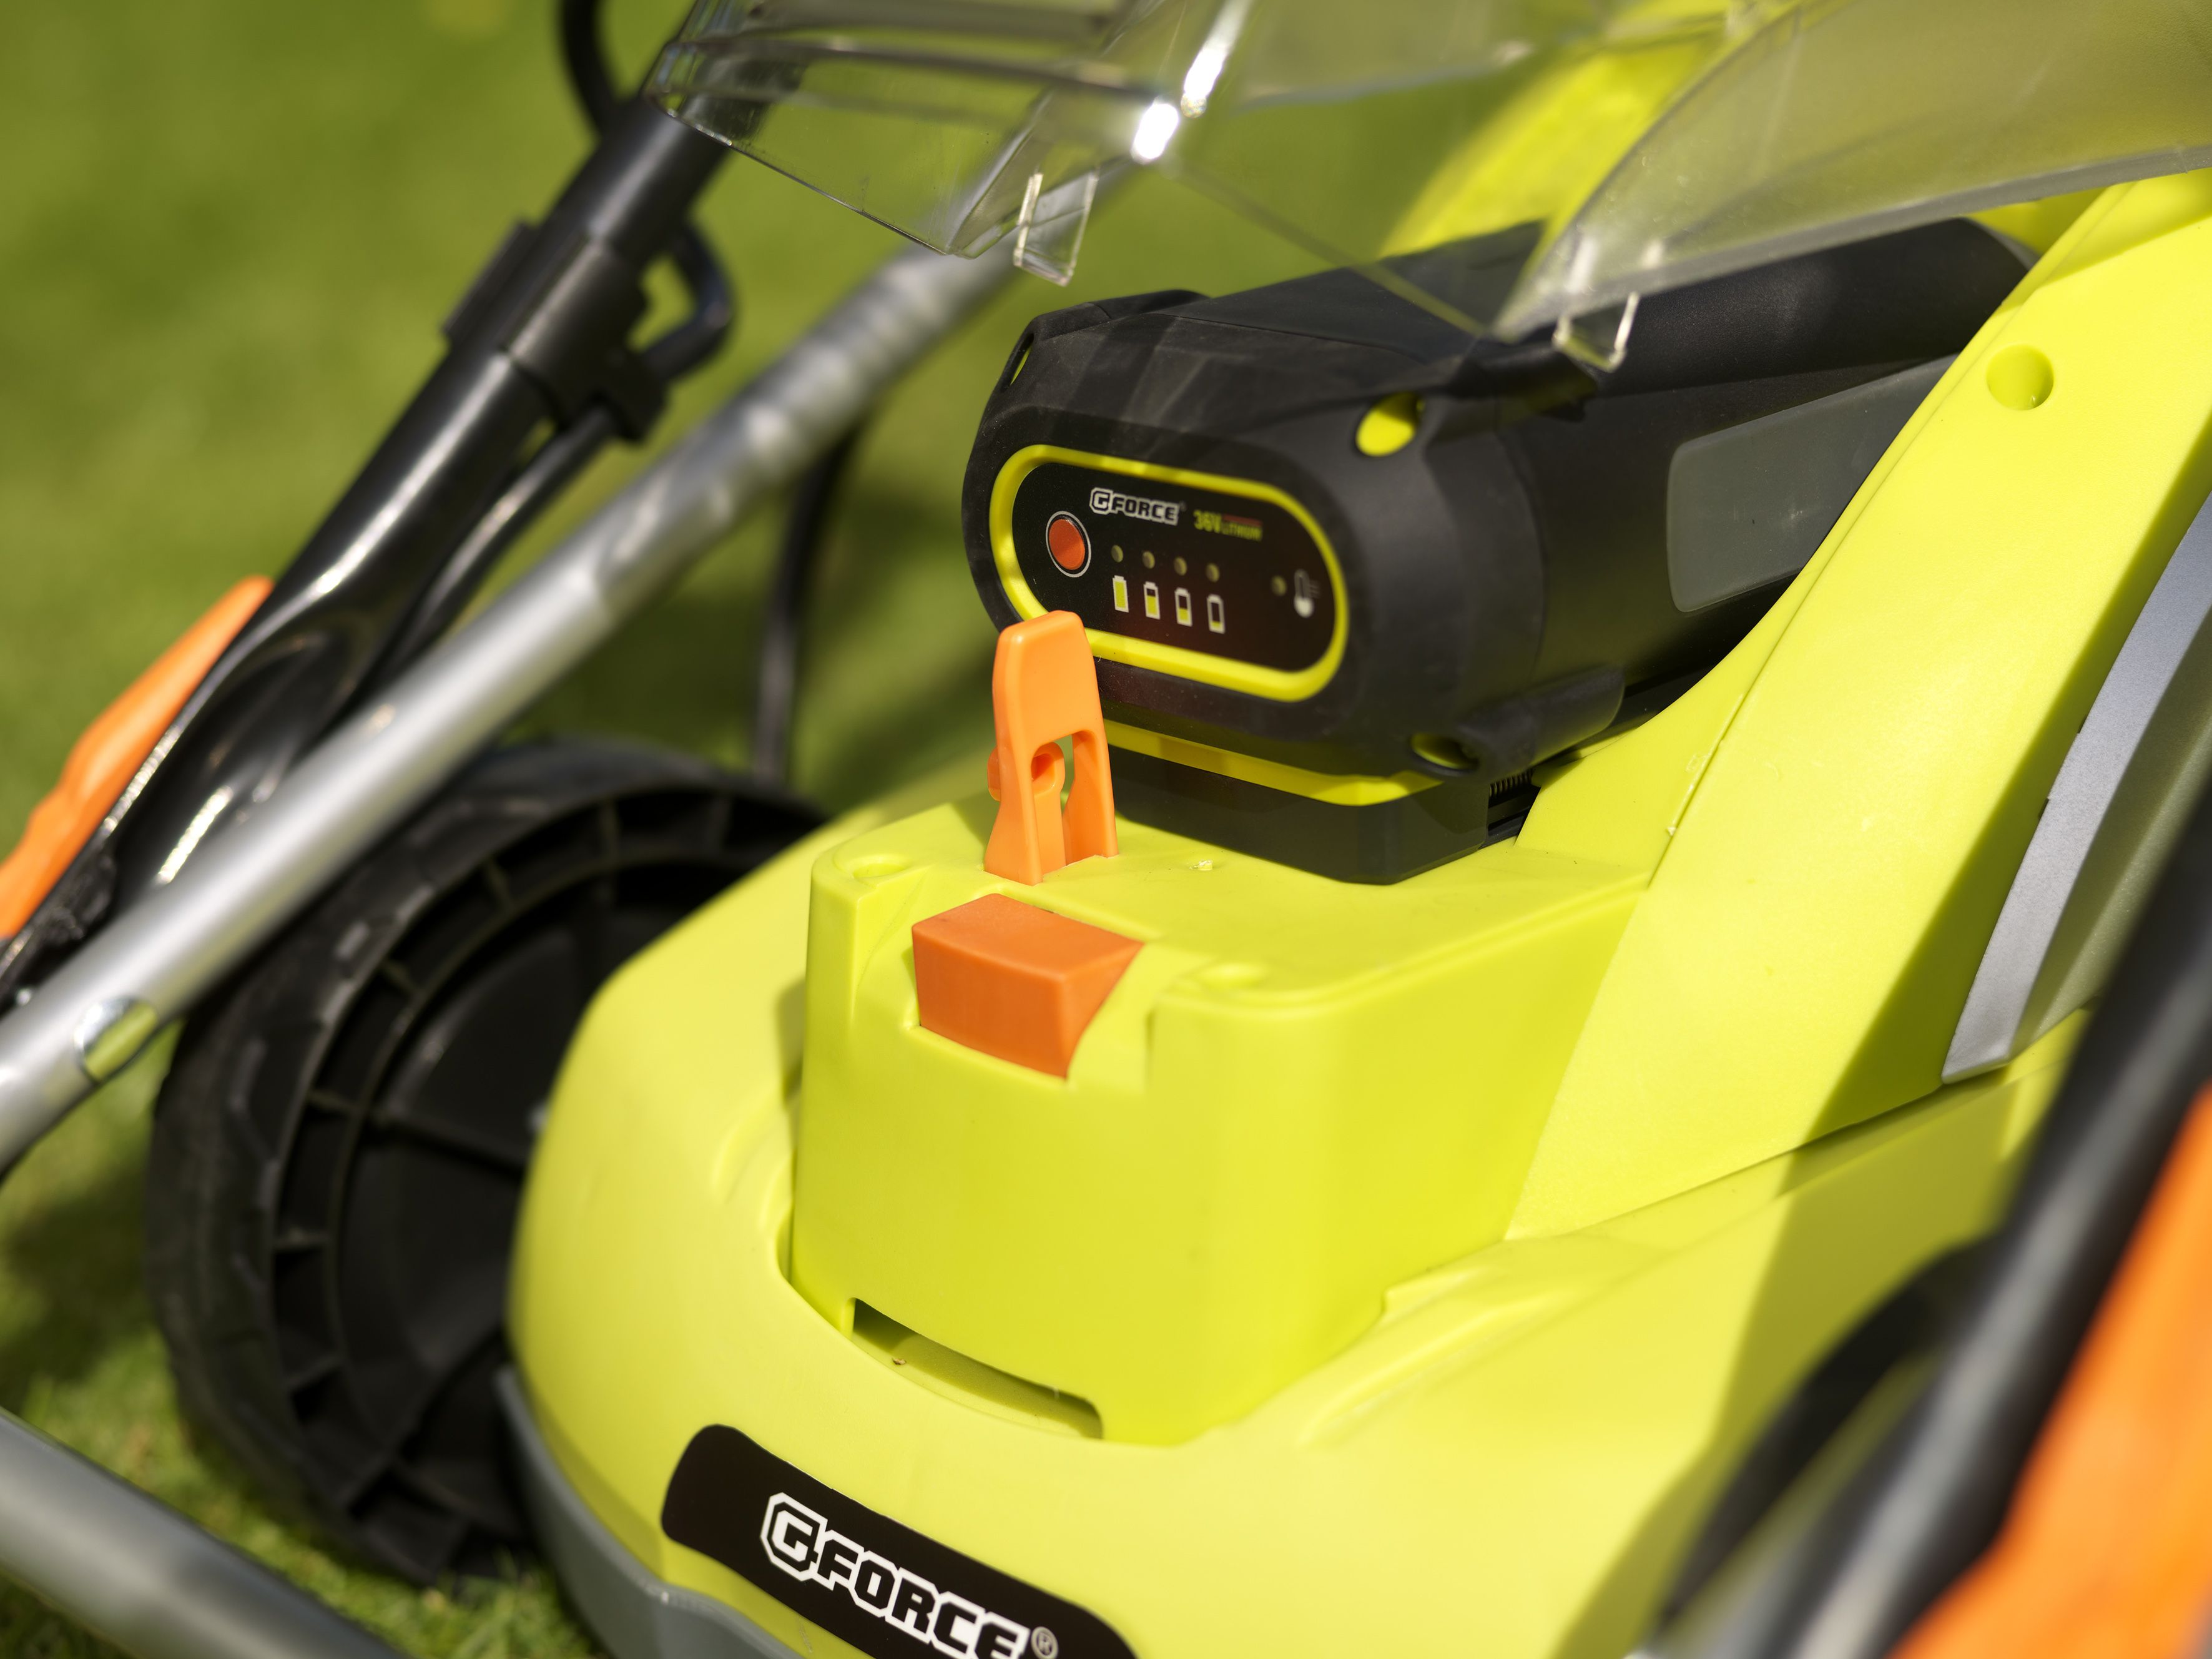 Pin by G FORCE TOOLS on G FORCE 36V Lawn Mower Pinterest